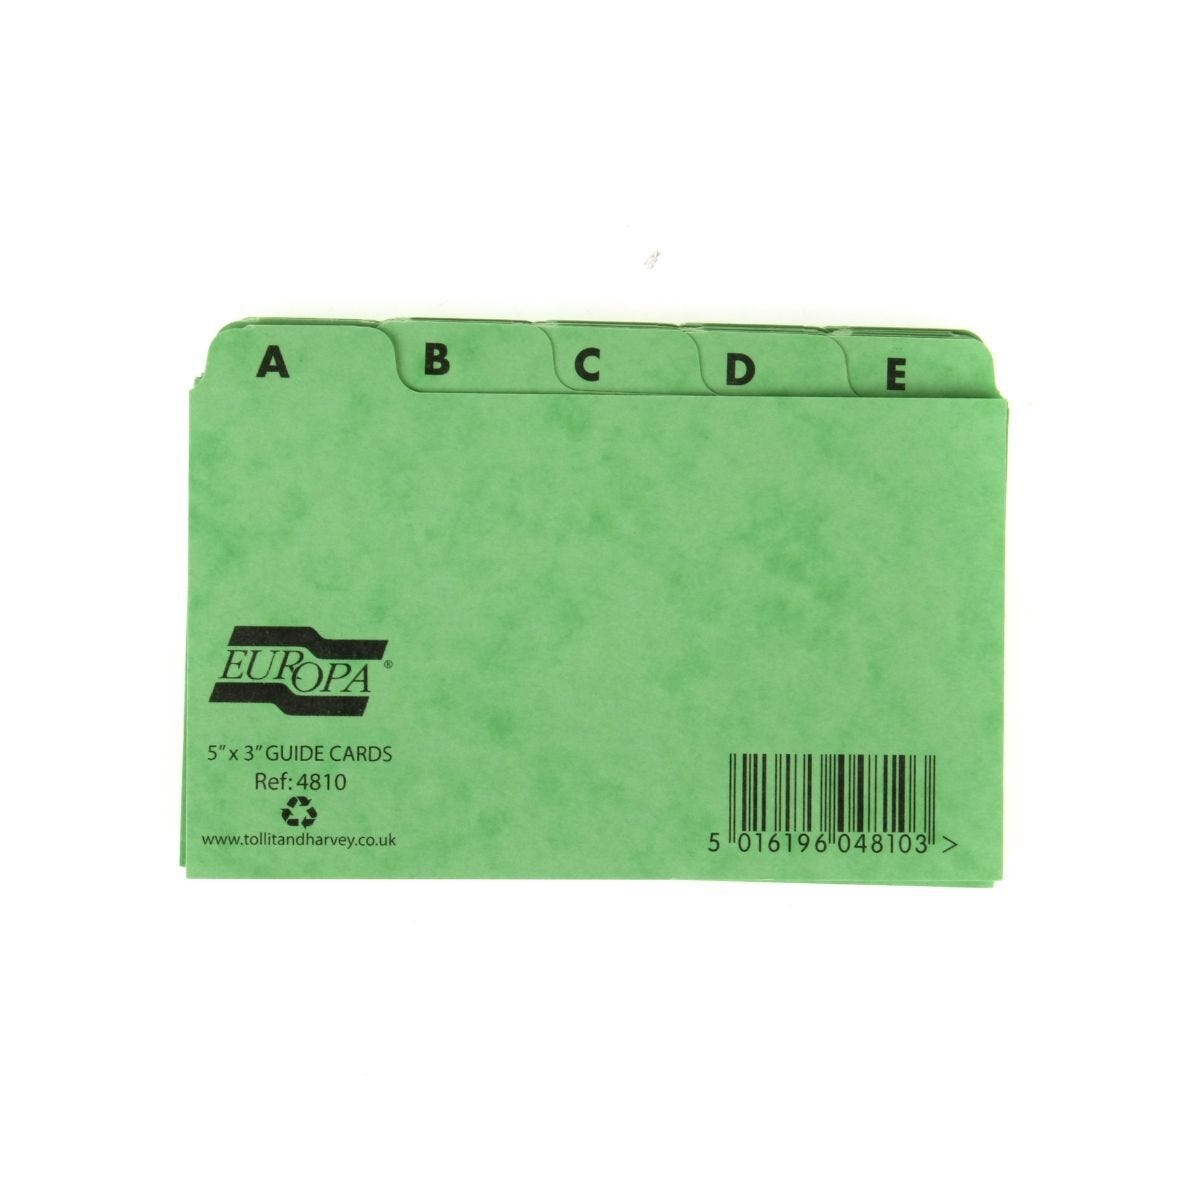 Europa A to Z Index Cards 126x76mm